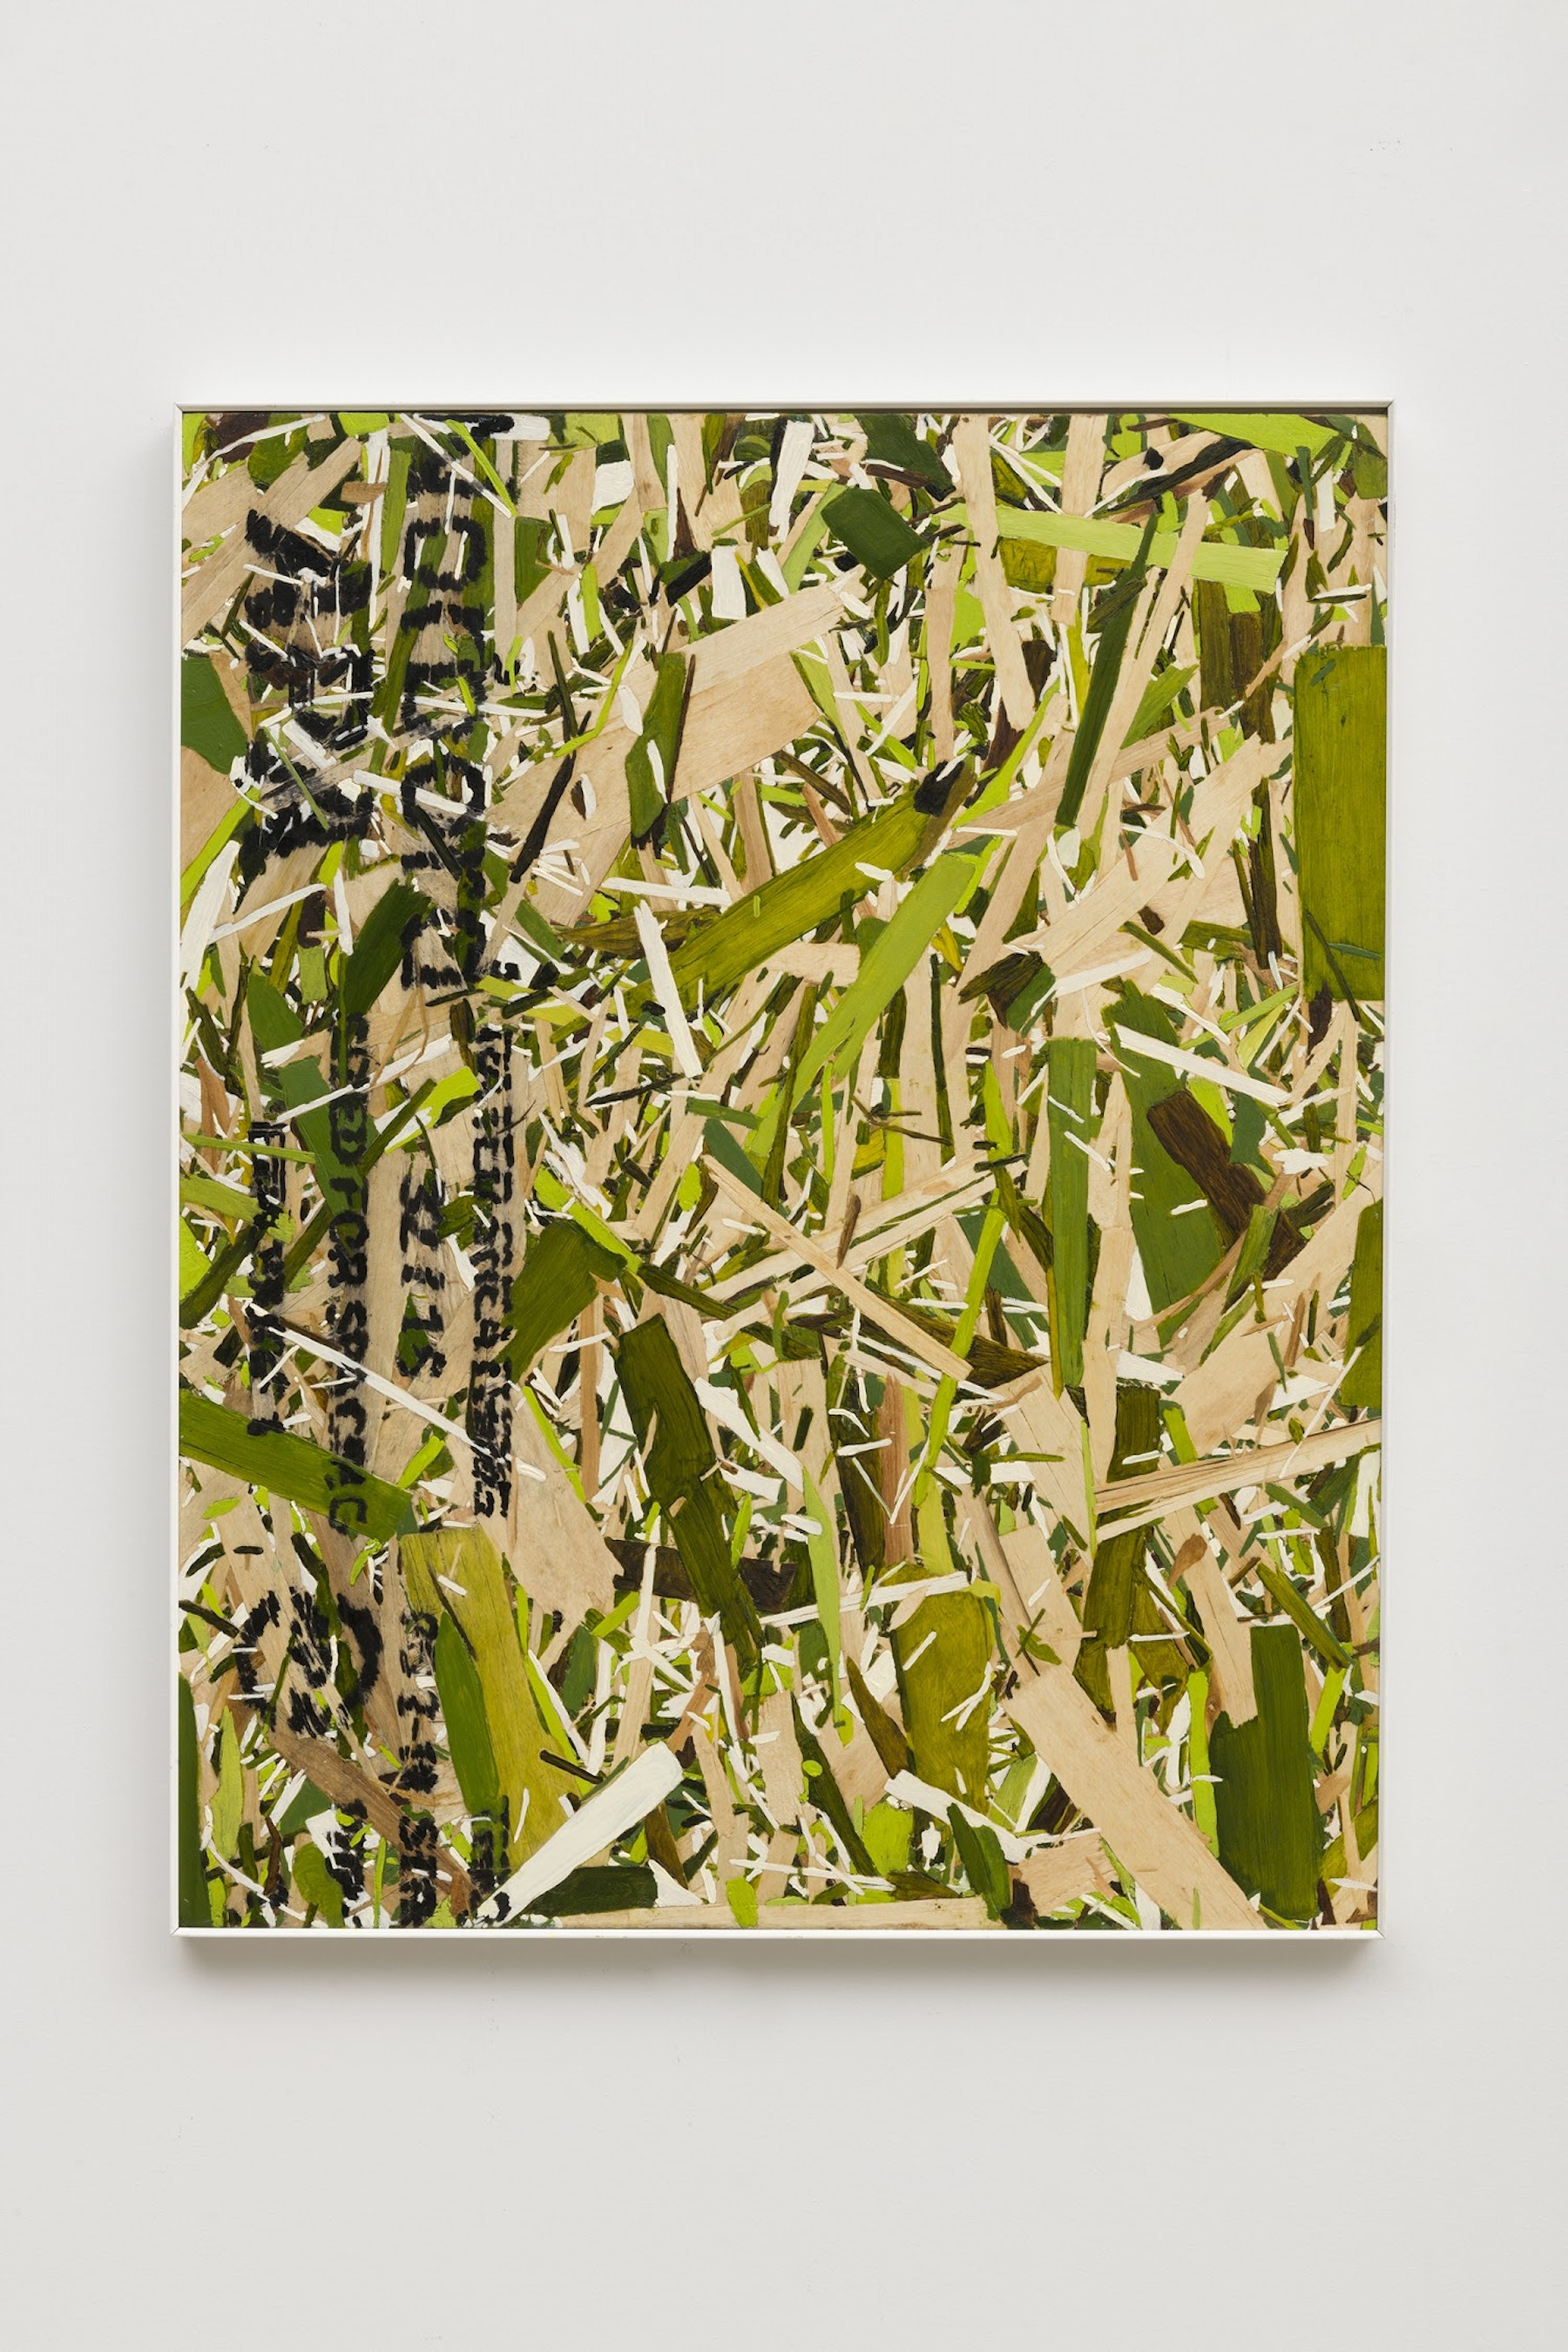 """Kim Dingle """"Home Depot Coloring book, GRASS,"""" 2019 24 x 19"""" [HxW] (60.96 x 48.26 cm) Inventory #DIN246 Courtesy of the artist and Vielmetter Los Angeles Photo credit: Jeff McLane"""